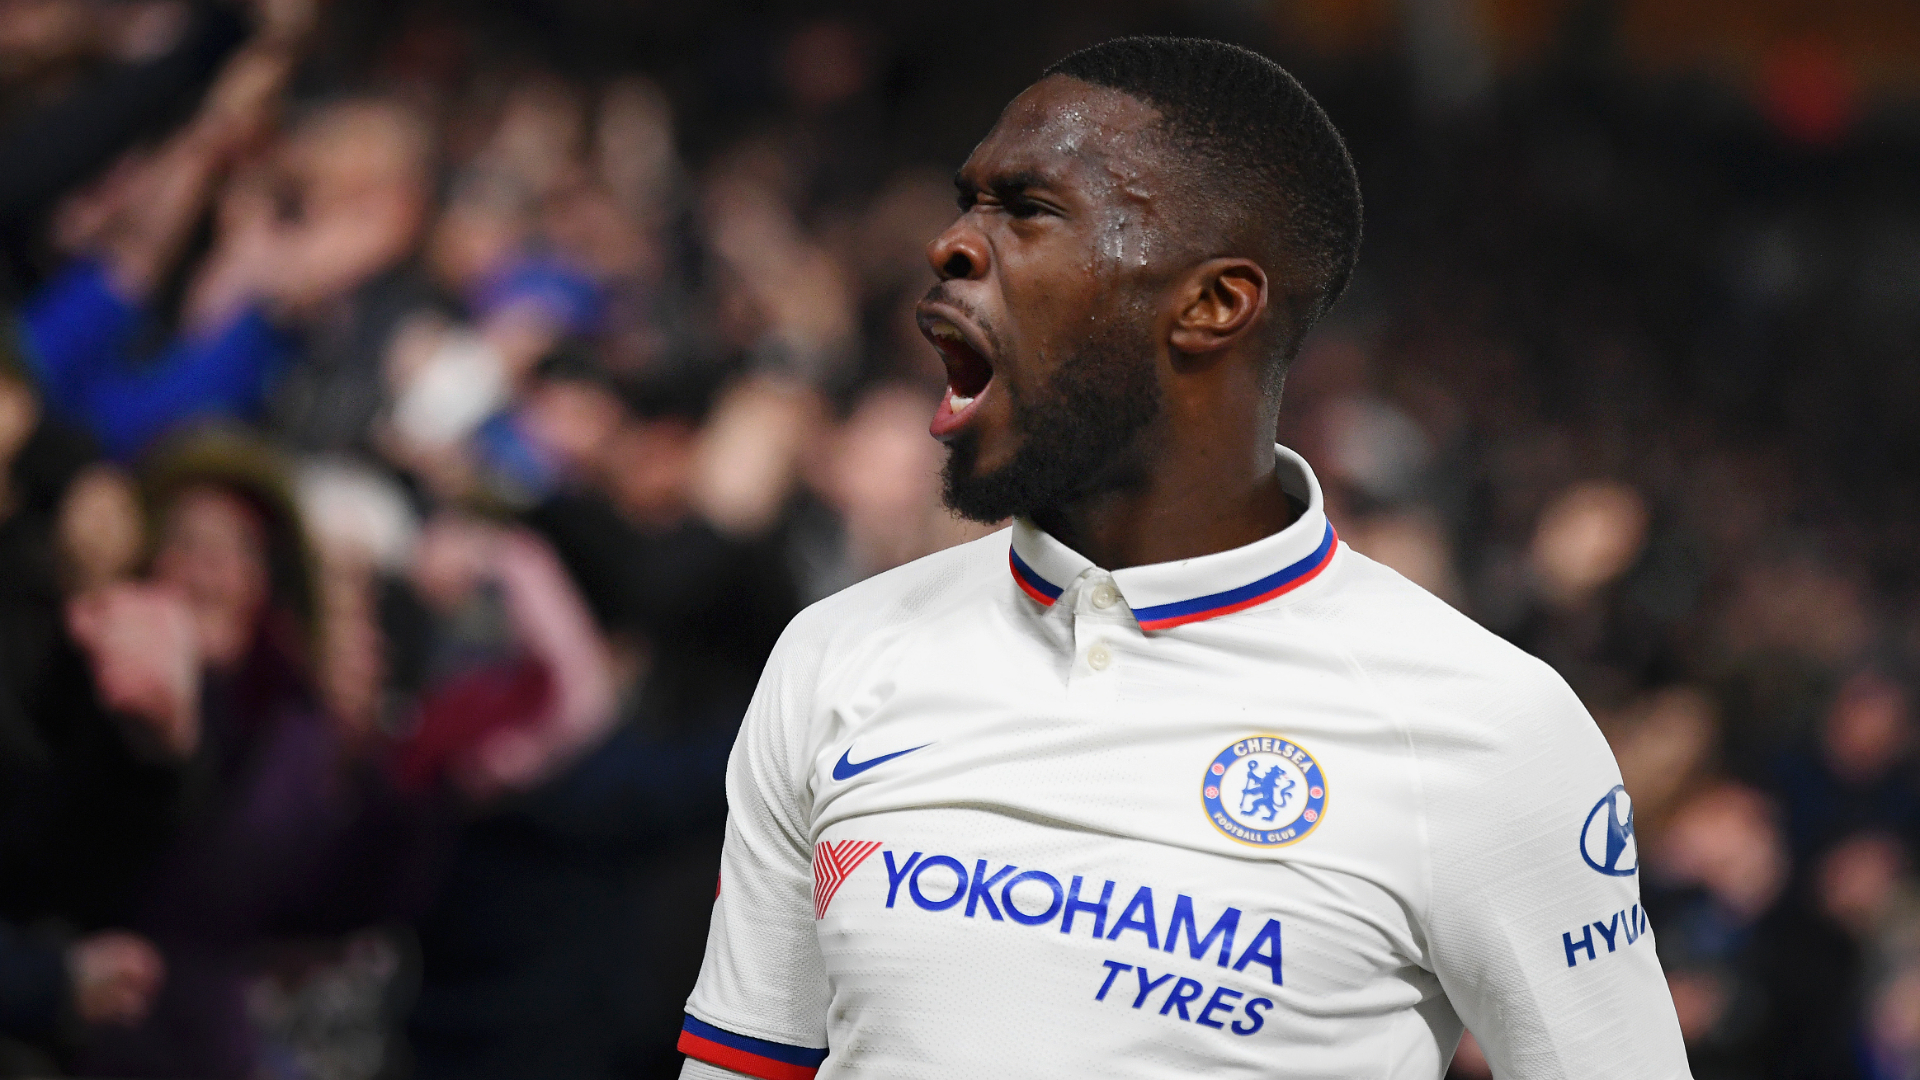 Chelsea defender Tomori reveals reasons behind failed West Ham move